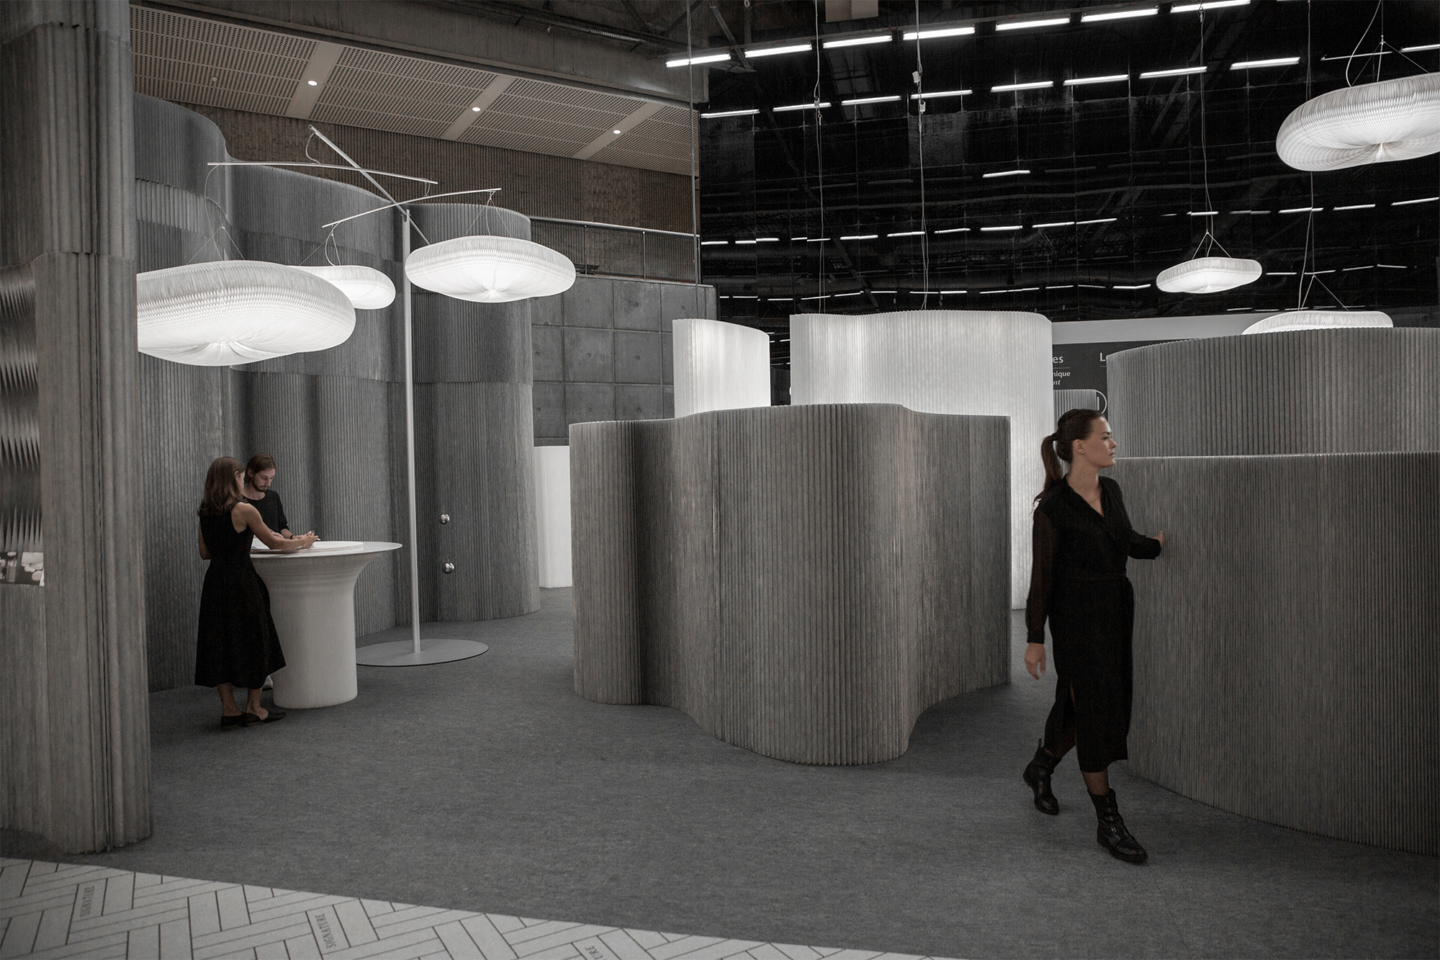 cloud lighting and aluminum room partitions by molo